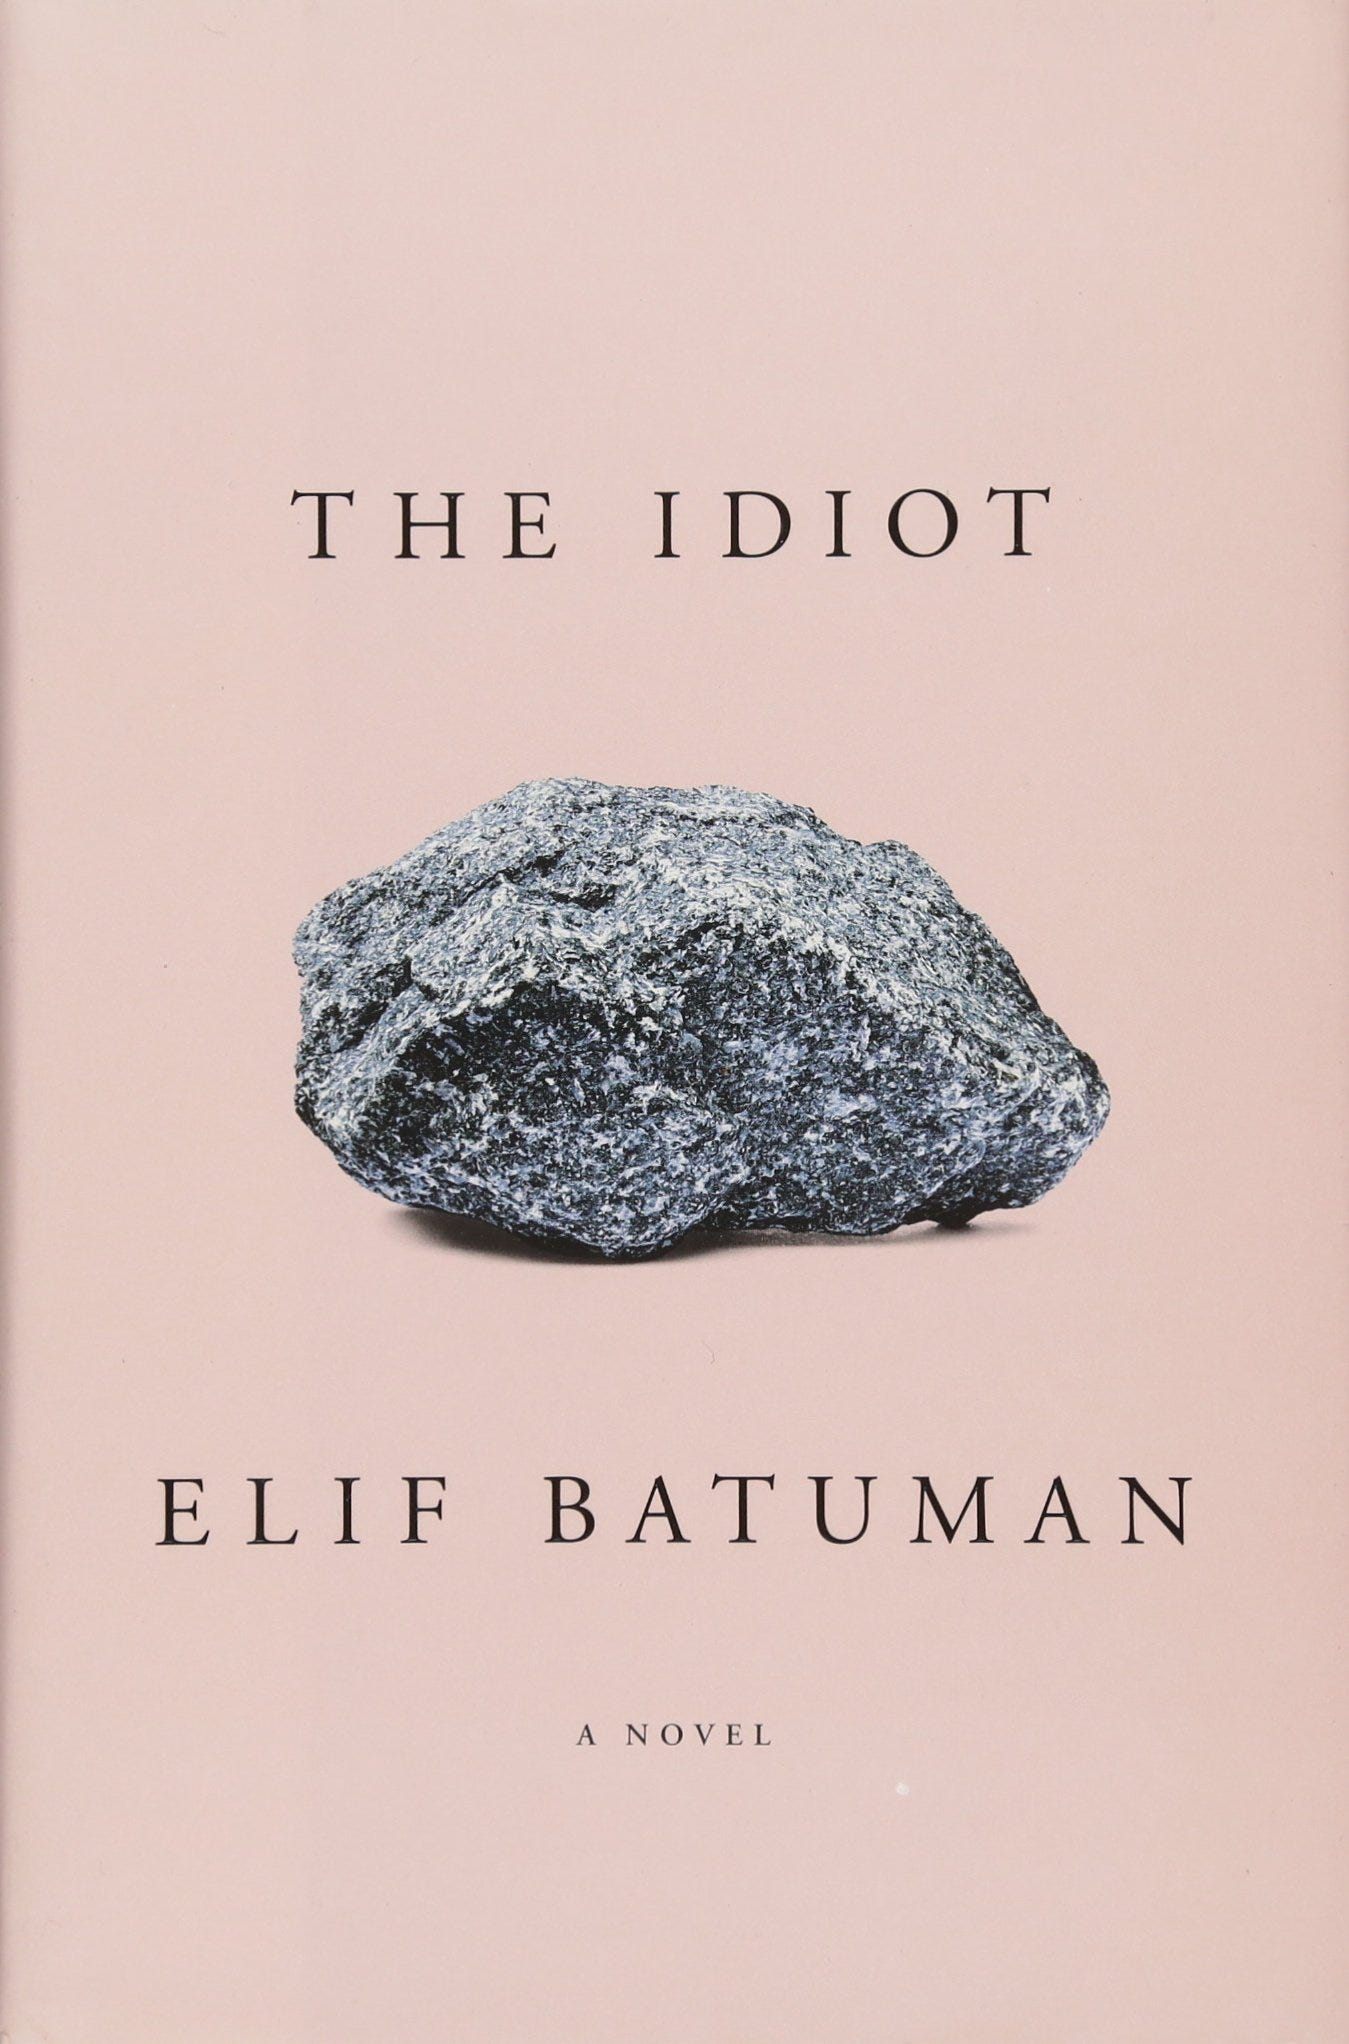 Image result for book the idiot